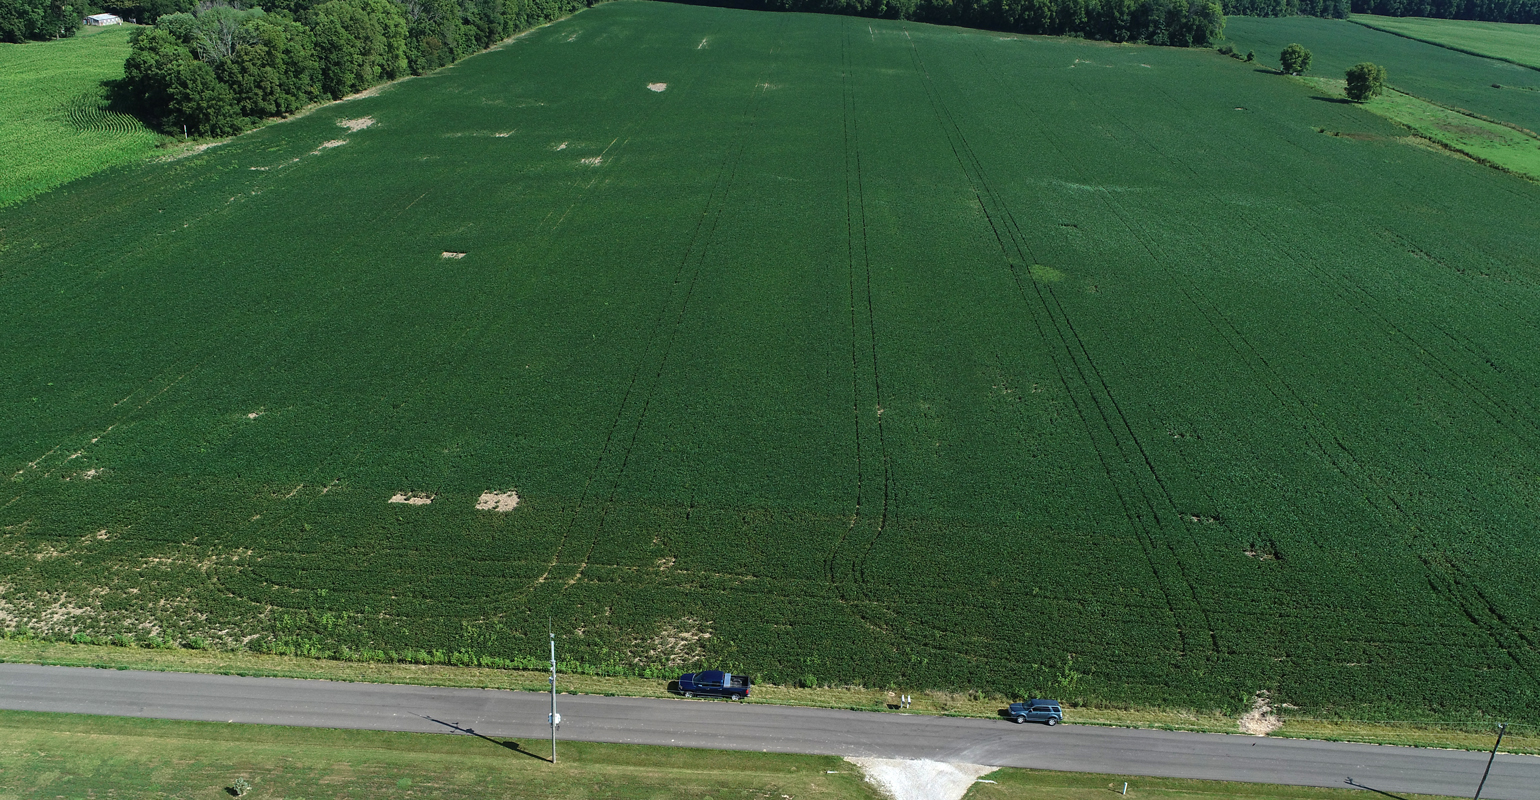 bare spots and other blemishes seen in field from drone